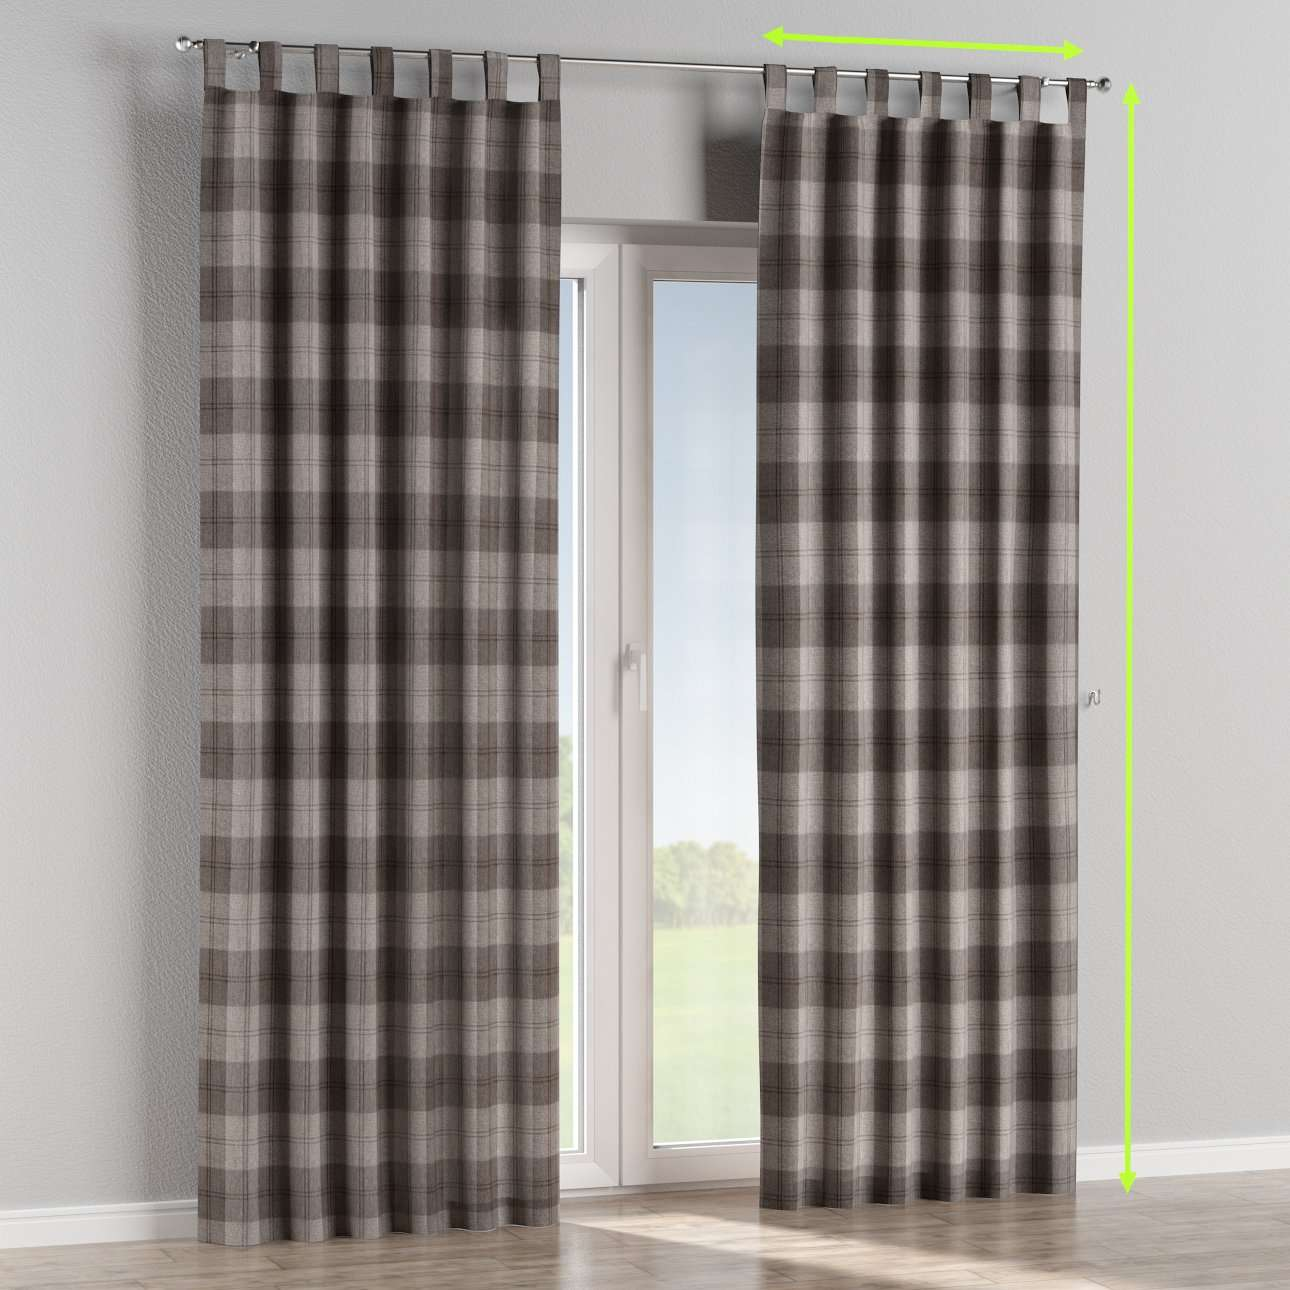 Tab top curtains in collection Edinburgh, fabric: 115-75